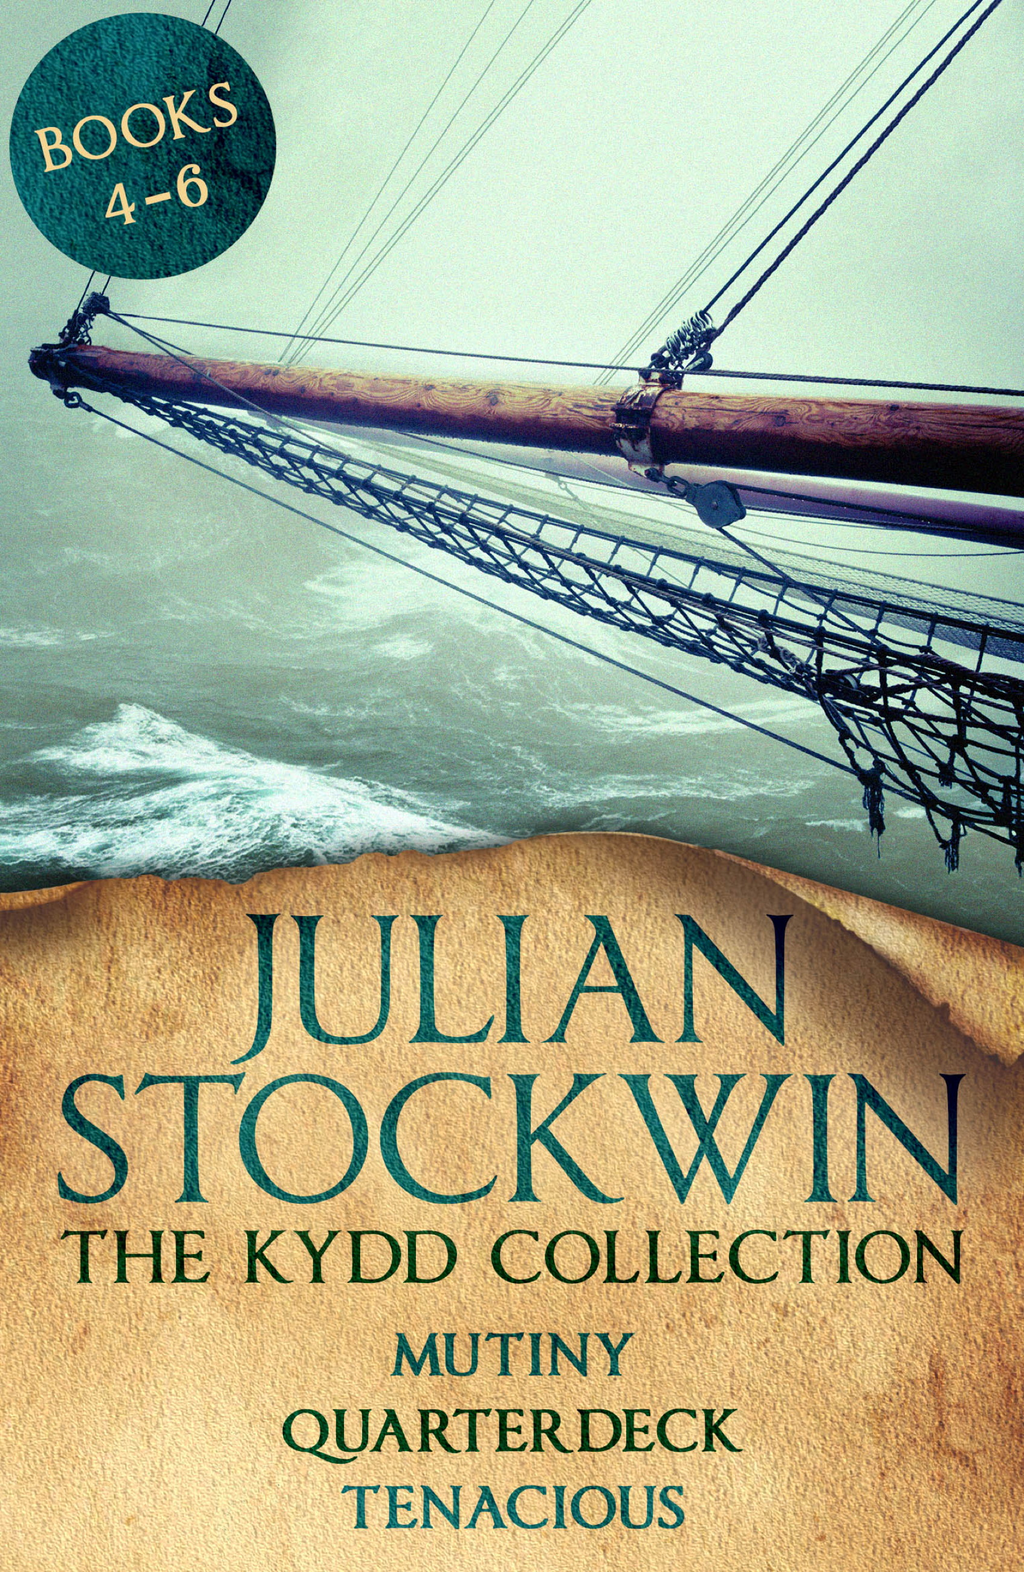 The Kydd Collection 2 (Mutiny, Quarterdeck, Tenacious)